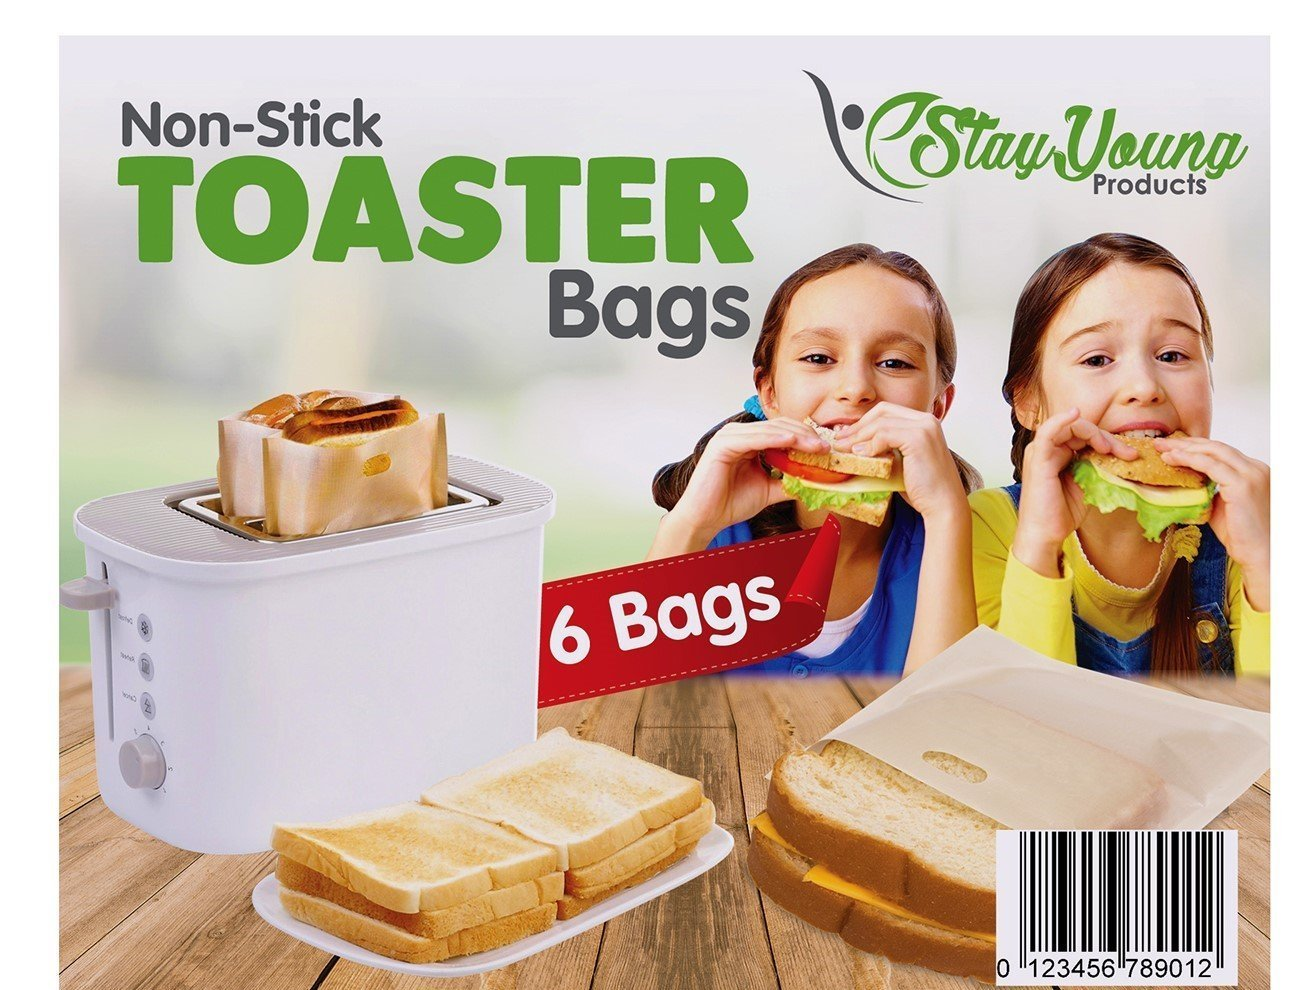 Gluten Free Toaster Bags (6-Piece Set) Reusable, Microwaveable Teflon Pockets | Sandwiches, Grilled Cheese, Panini, Toast | Gluten Free | Microwave, Dishwasher Safe StayYoung Products SYNCHKG112342